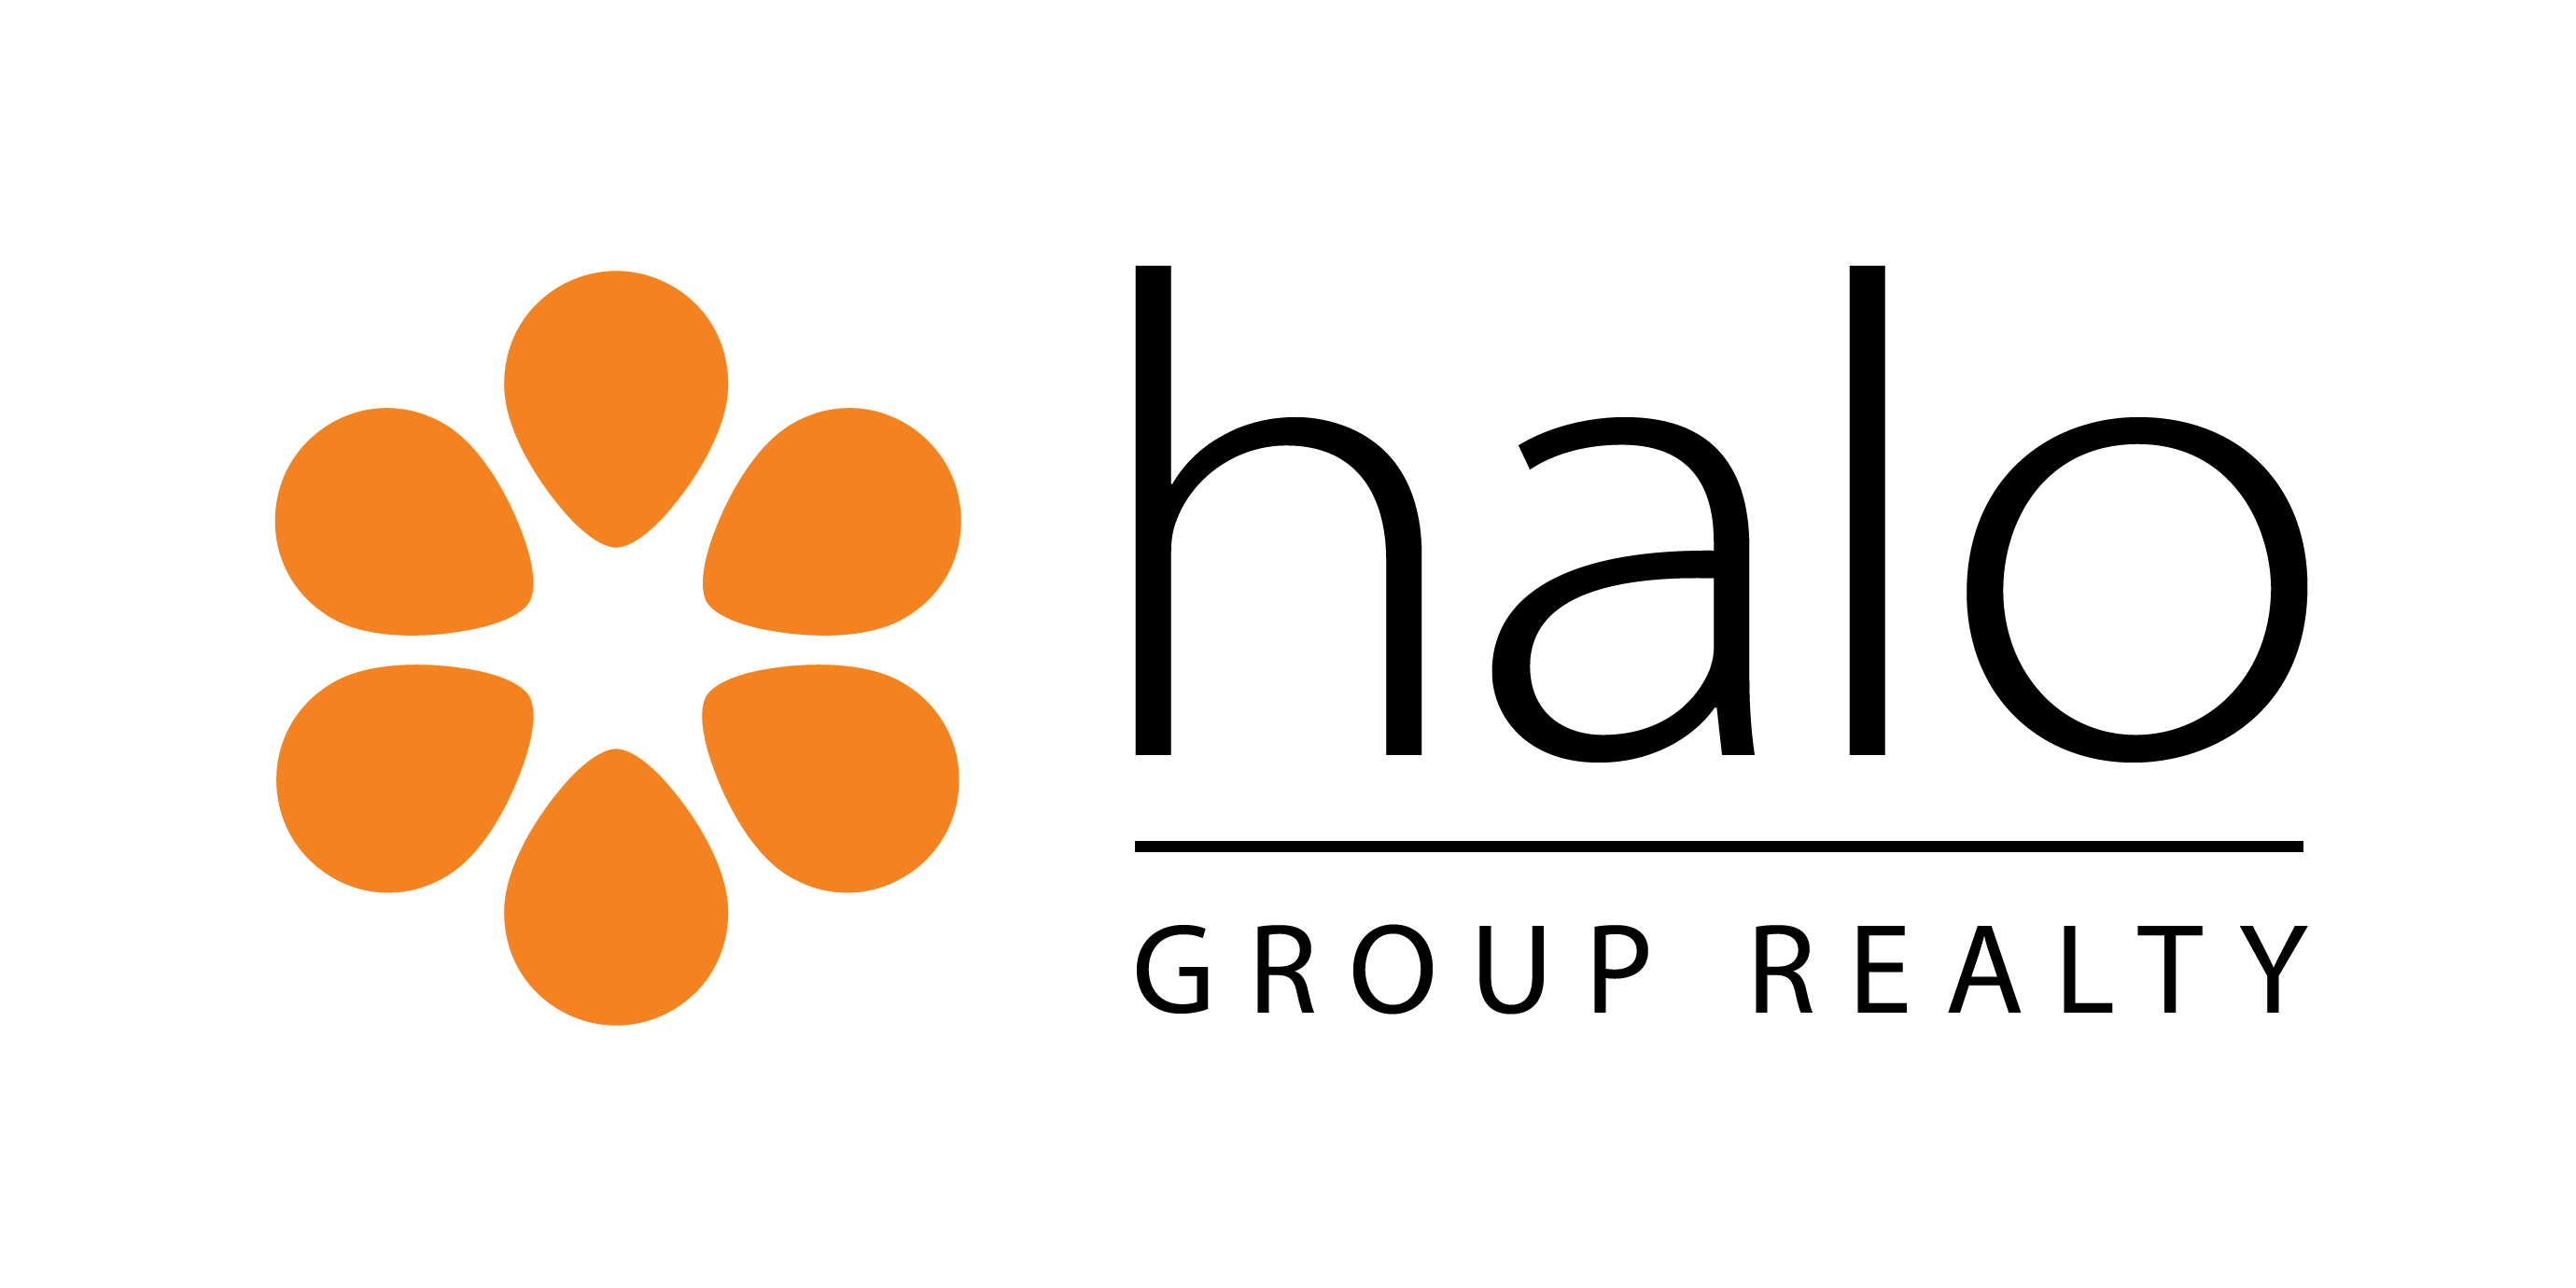 Halo Group Realty Company Logo